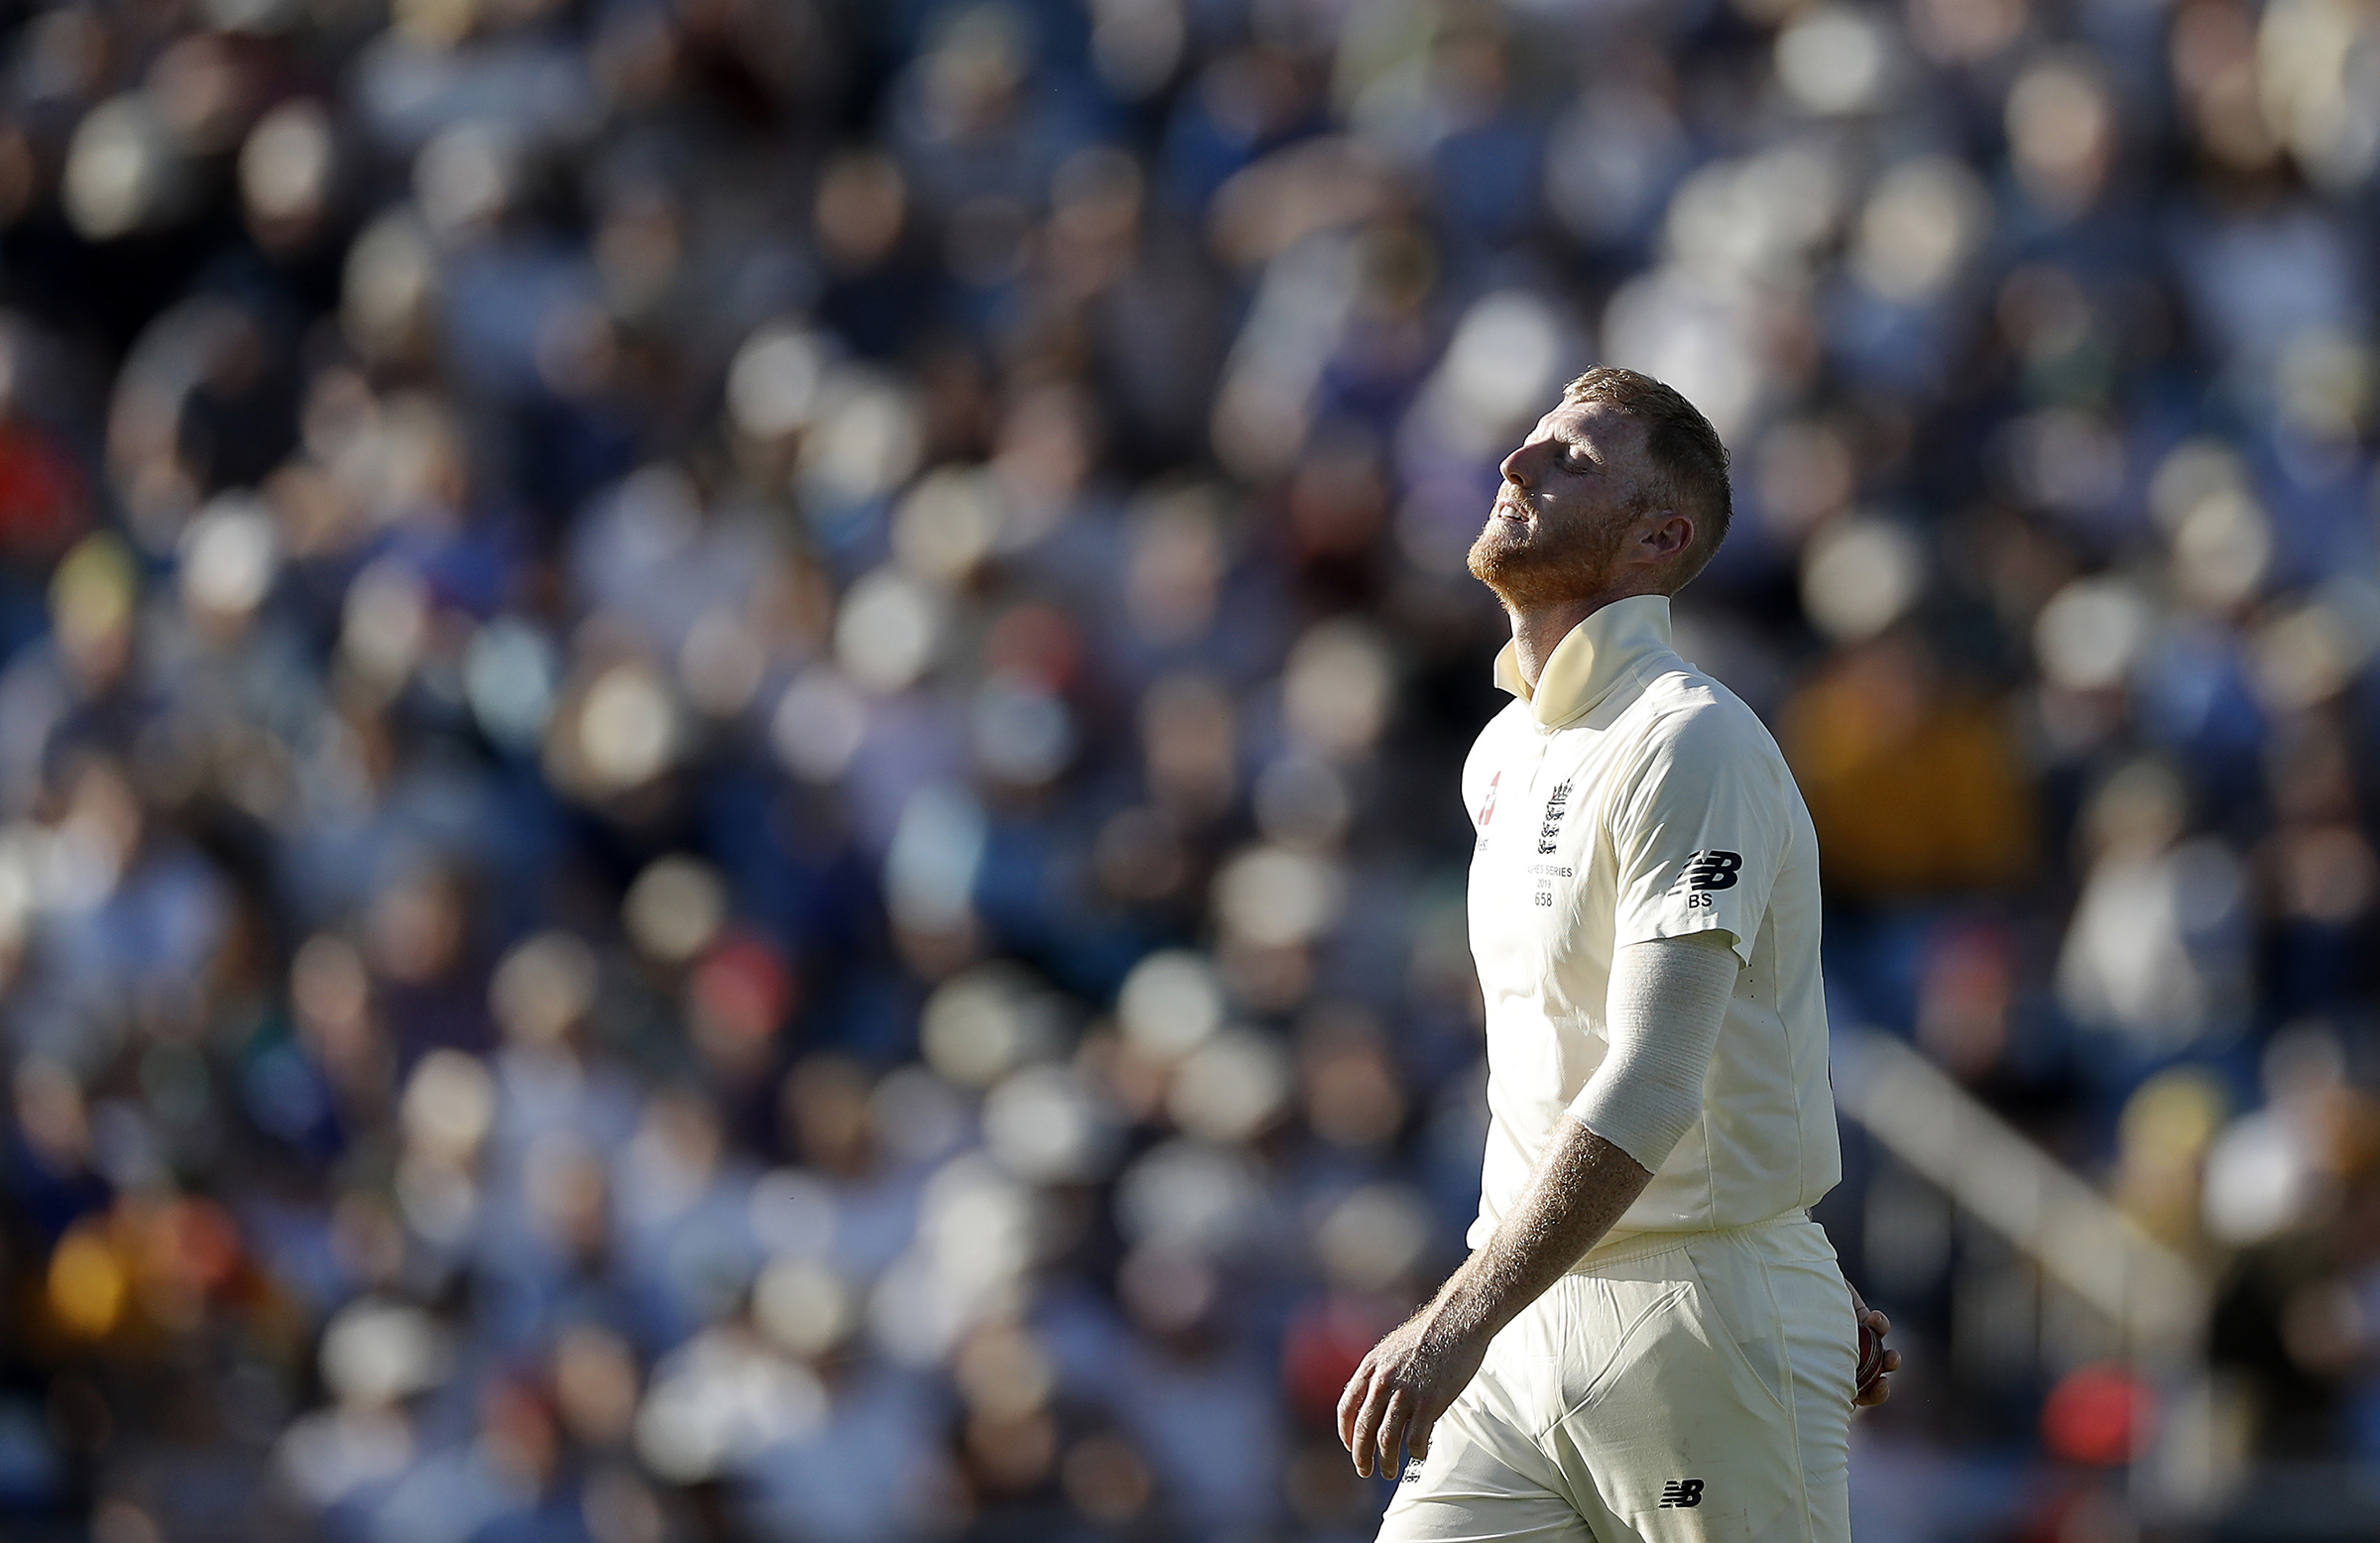 Stokes bowled 15.2 overs virtually on the trot // Getty